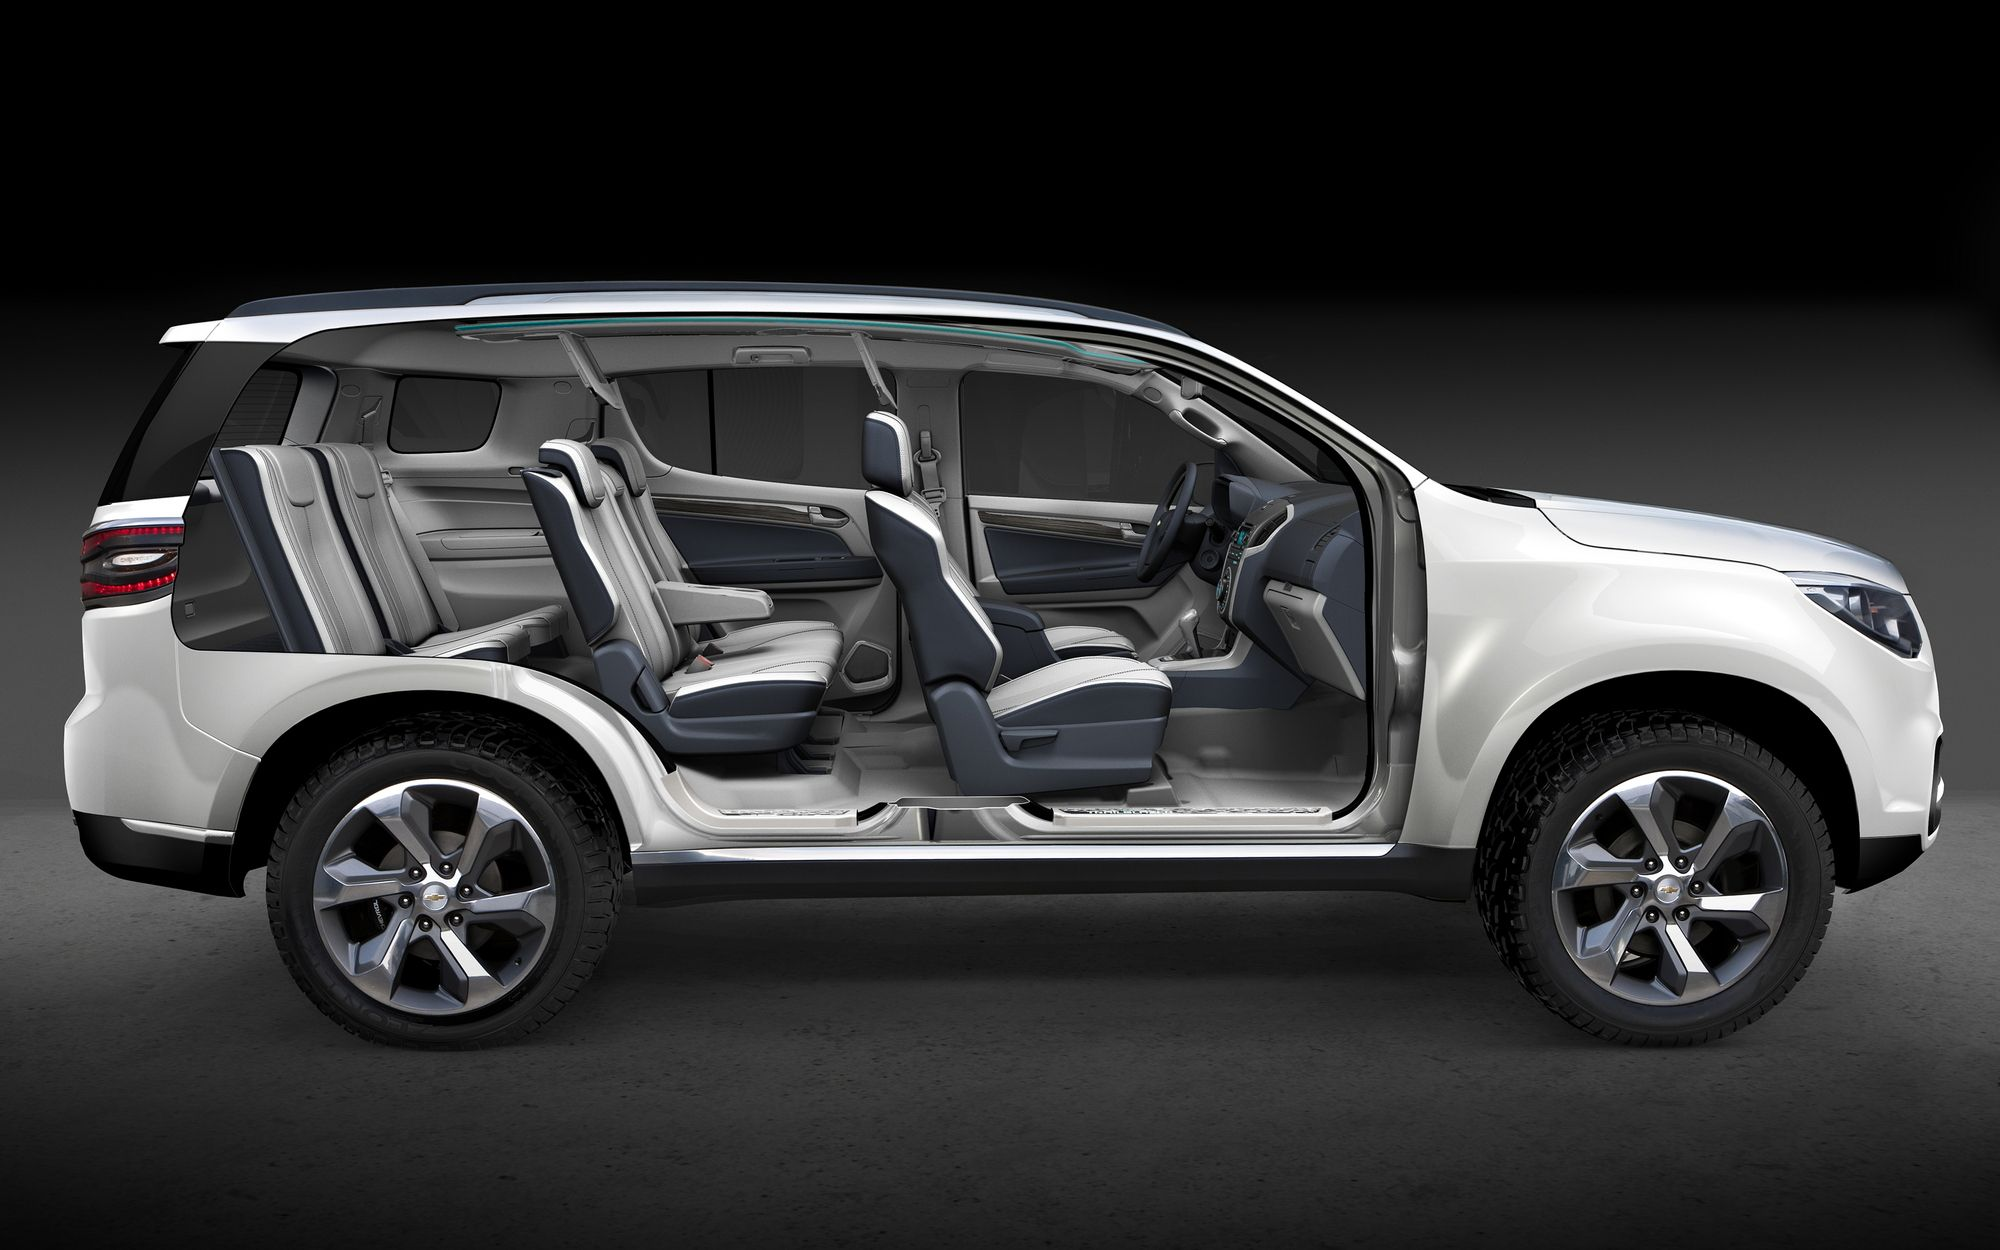 New Chevrolet Traverse Seating Capacity 8 More Details At